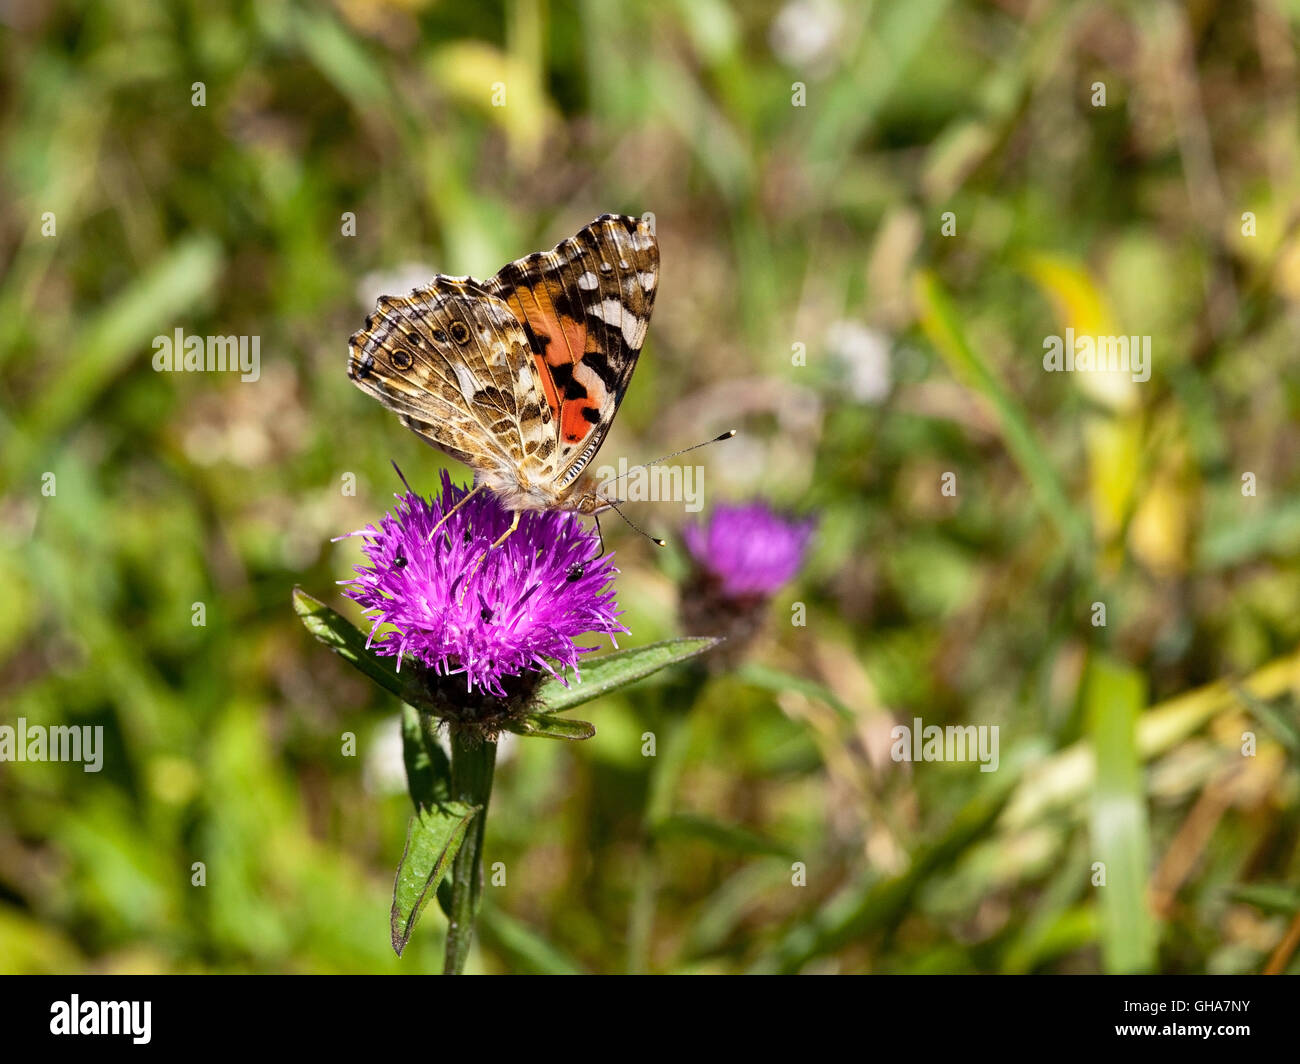 A painted lady butterfly, Cynthia cardui feeds from a purple knapweed flower in summertime. Stock Photo